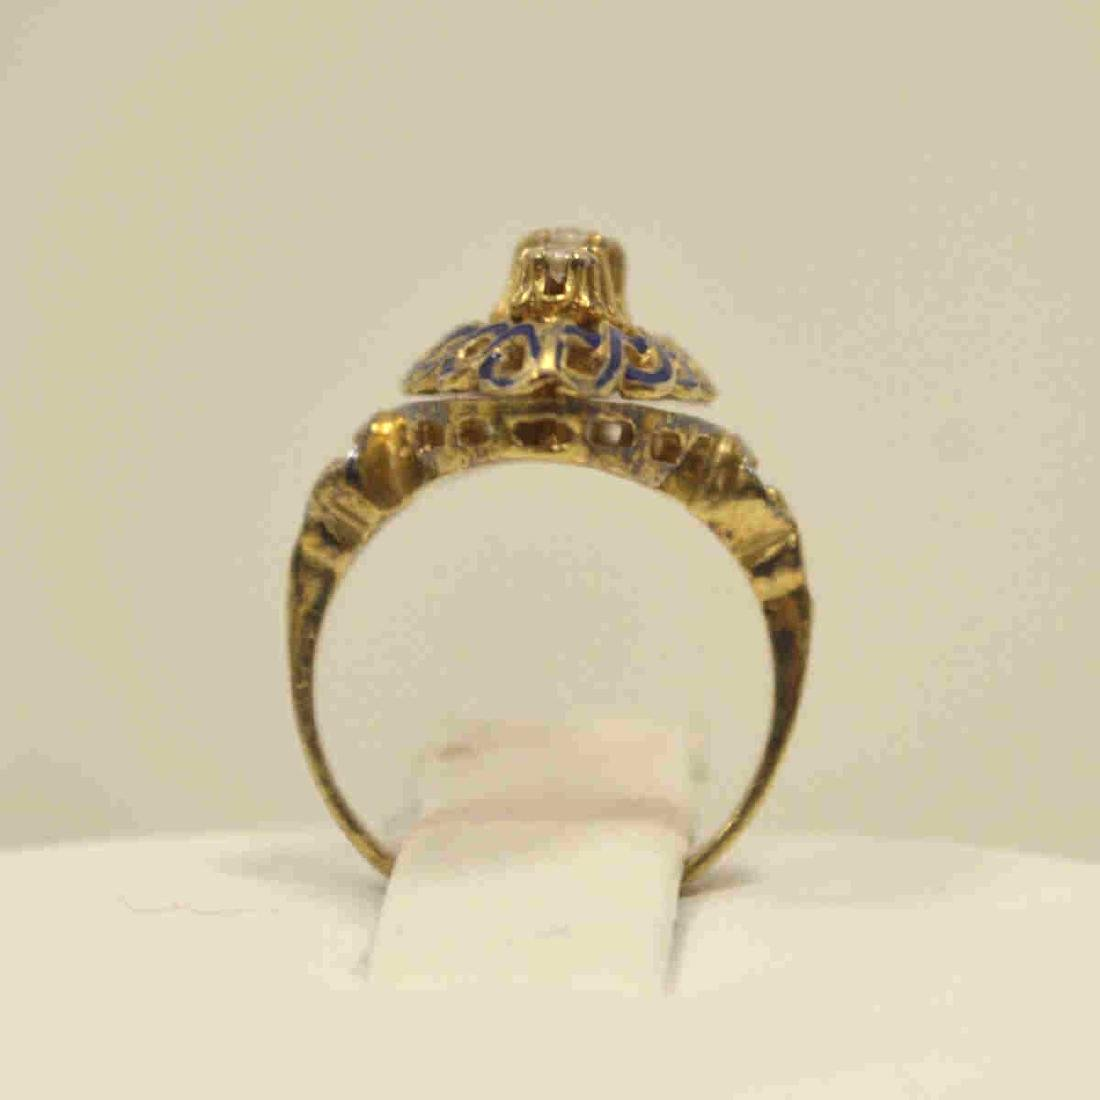 Vintage 14kt yellow gold diamond fashion ring - 4